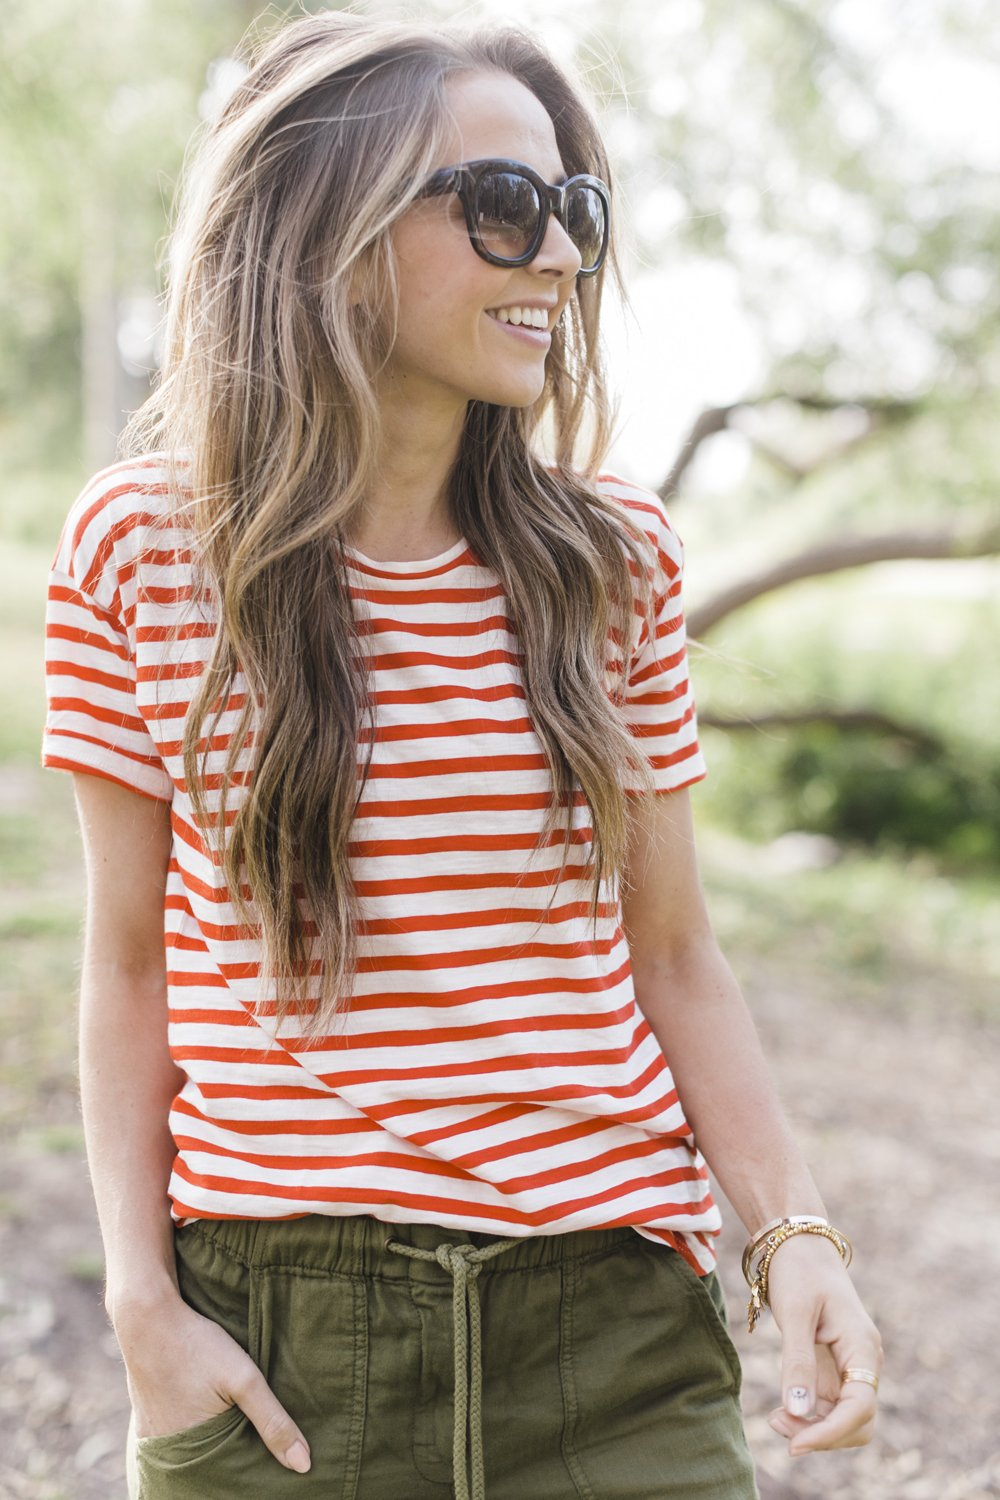 Merrick's Art | Madewell Striped Tee